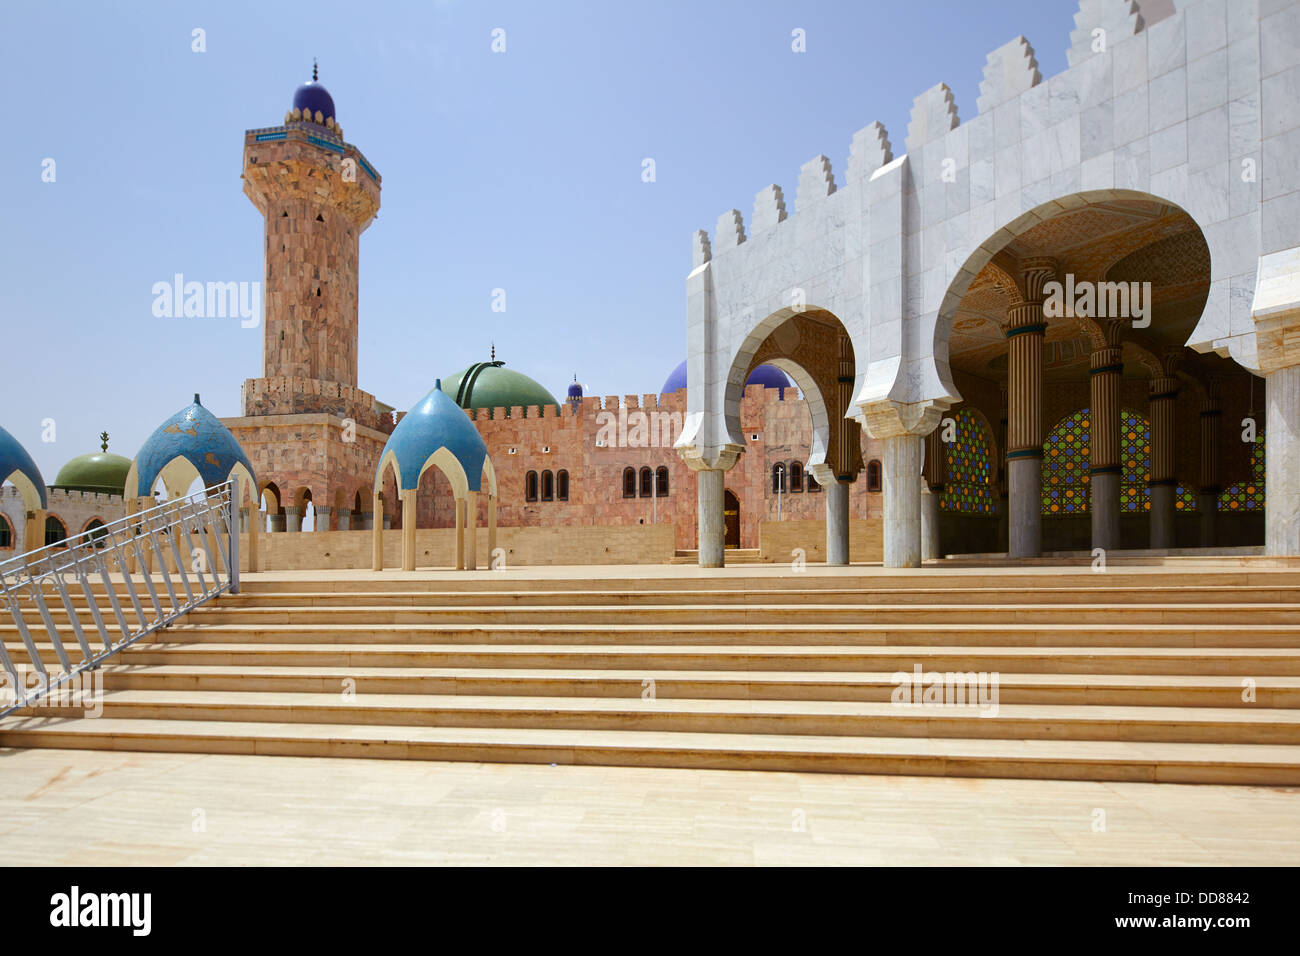 Great Mosque of Touba, Senegal, Africa - Stock Image